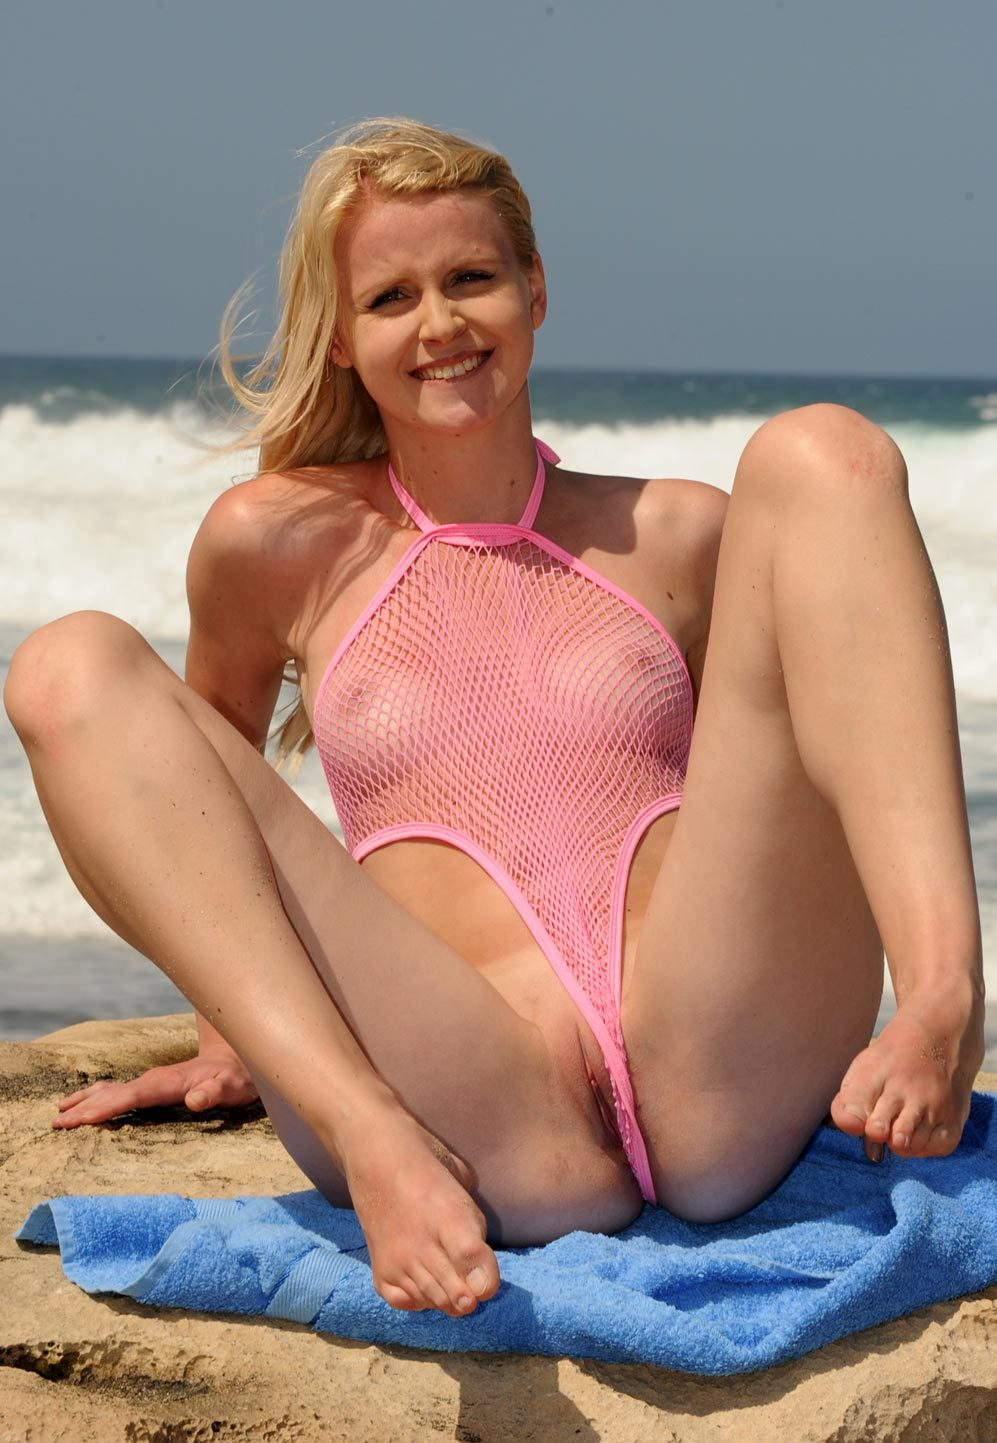 milf in mesh one piece flashing her cute little pussy.